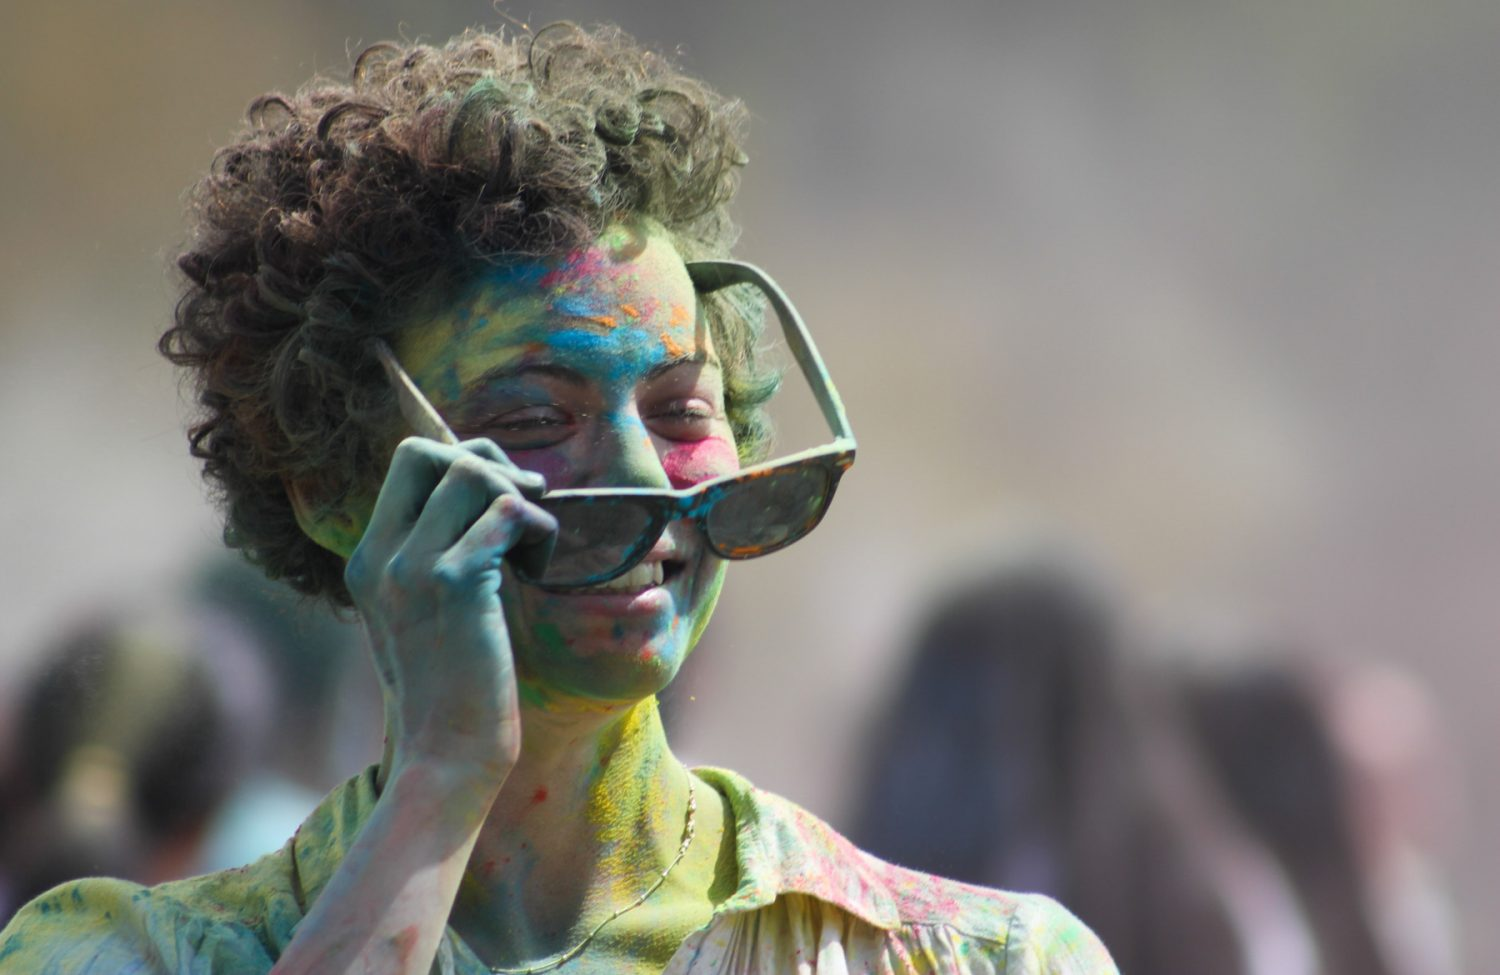 Covered in bright colors, a woman puts on her sunglasses to prevent the colored cornstarch from getting in her eyes.